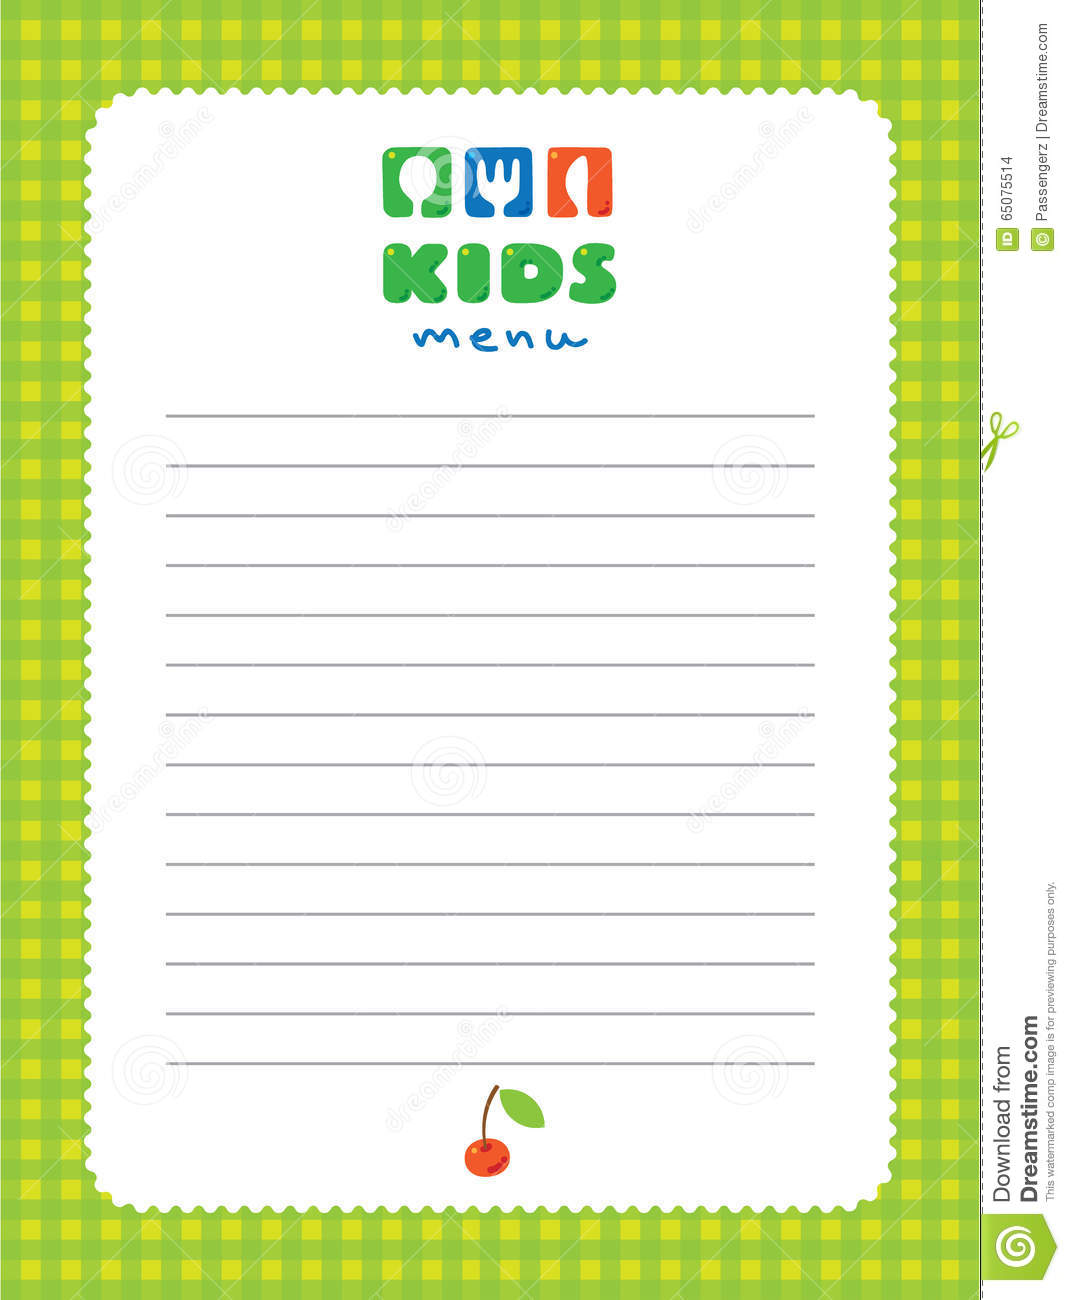 Design Template Background For Kids Menu  Kids Menu Templates